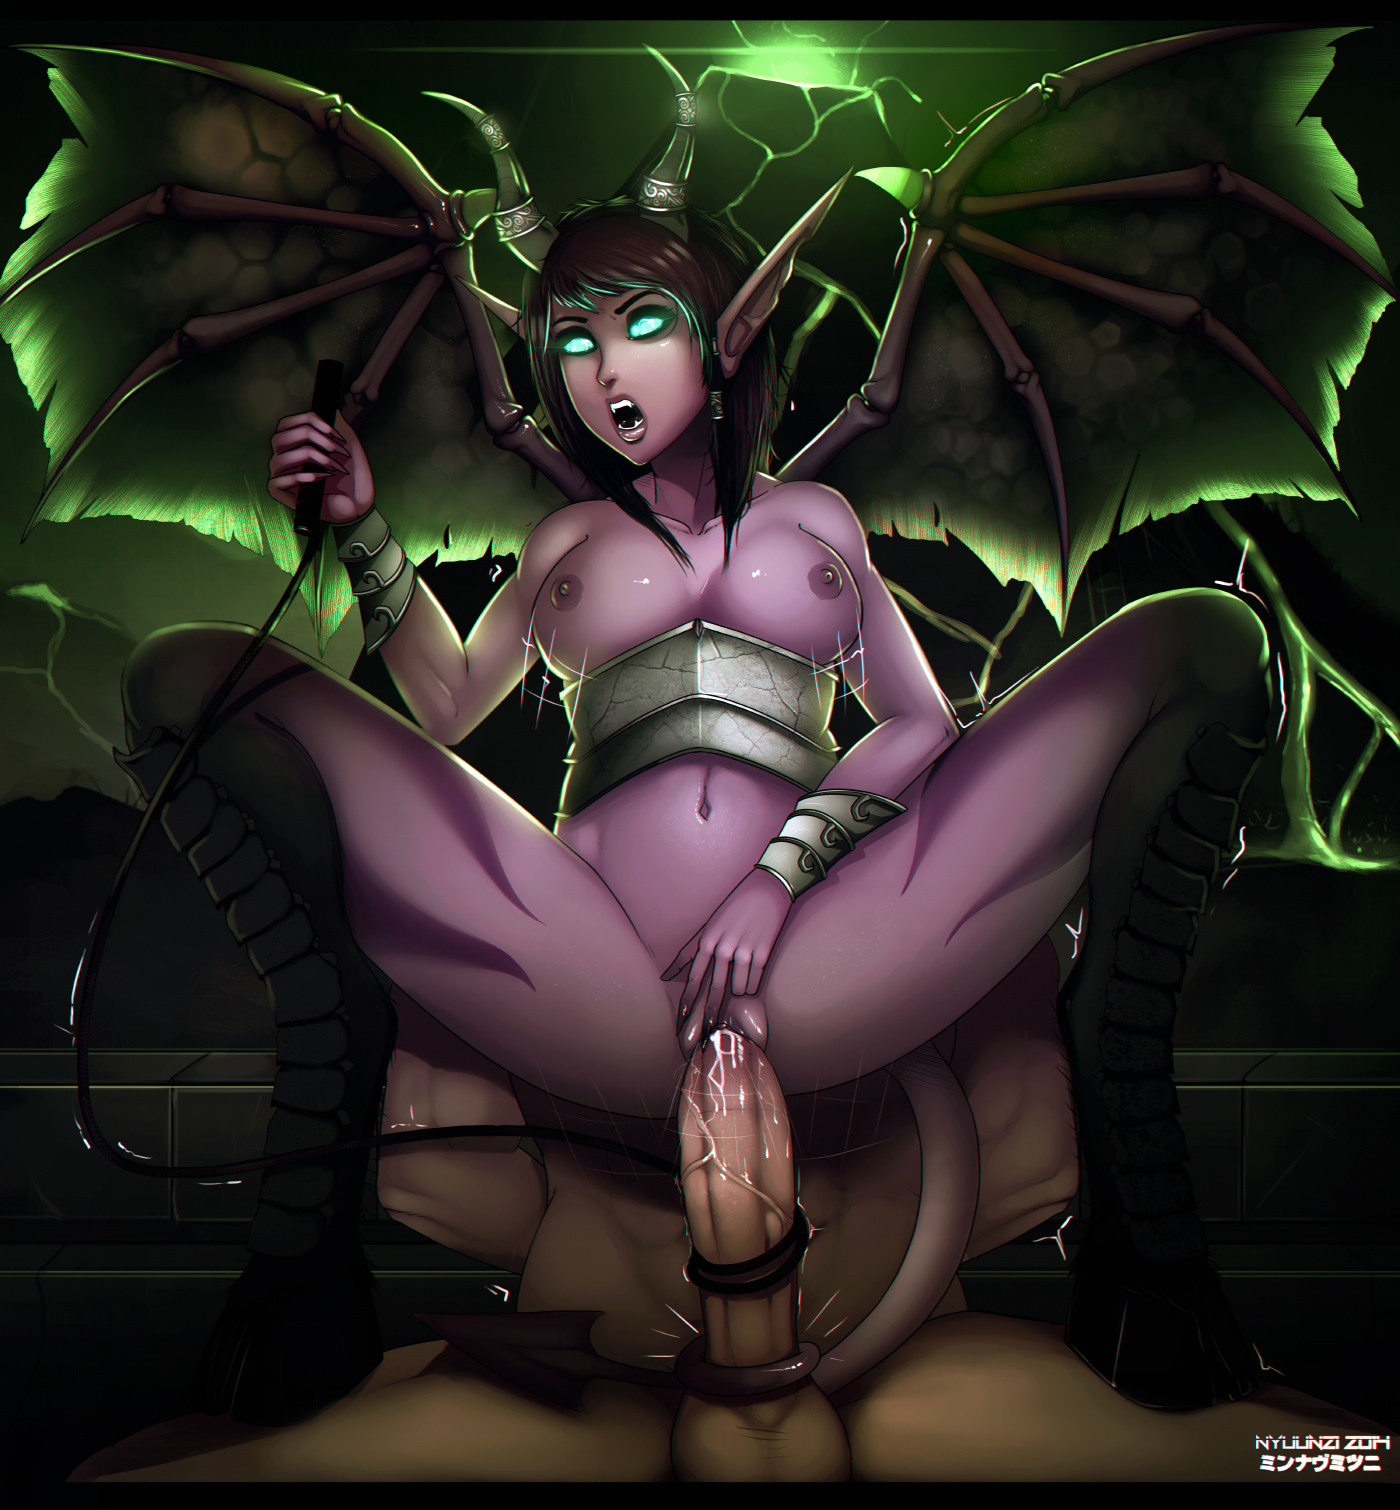 Succubus wow fuck naked photos